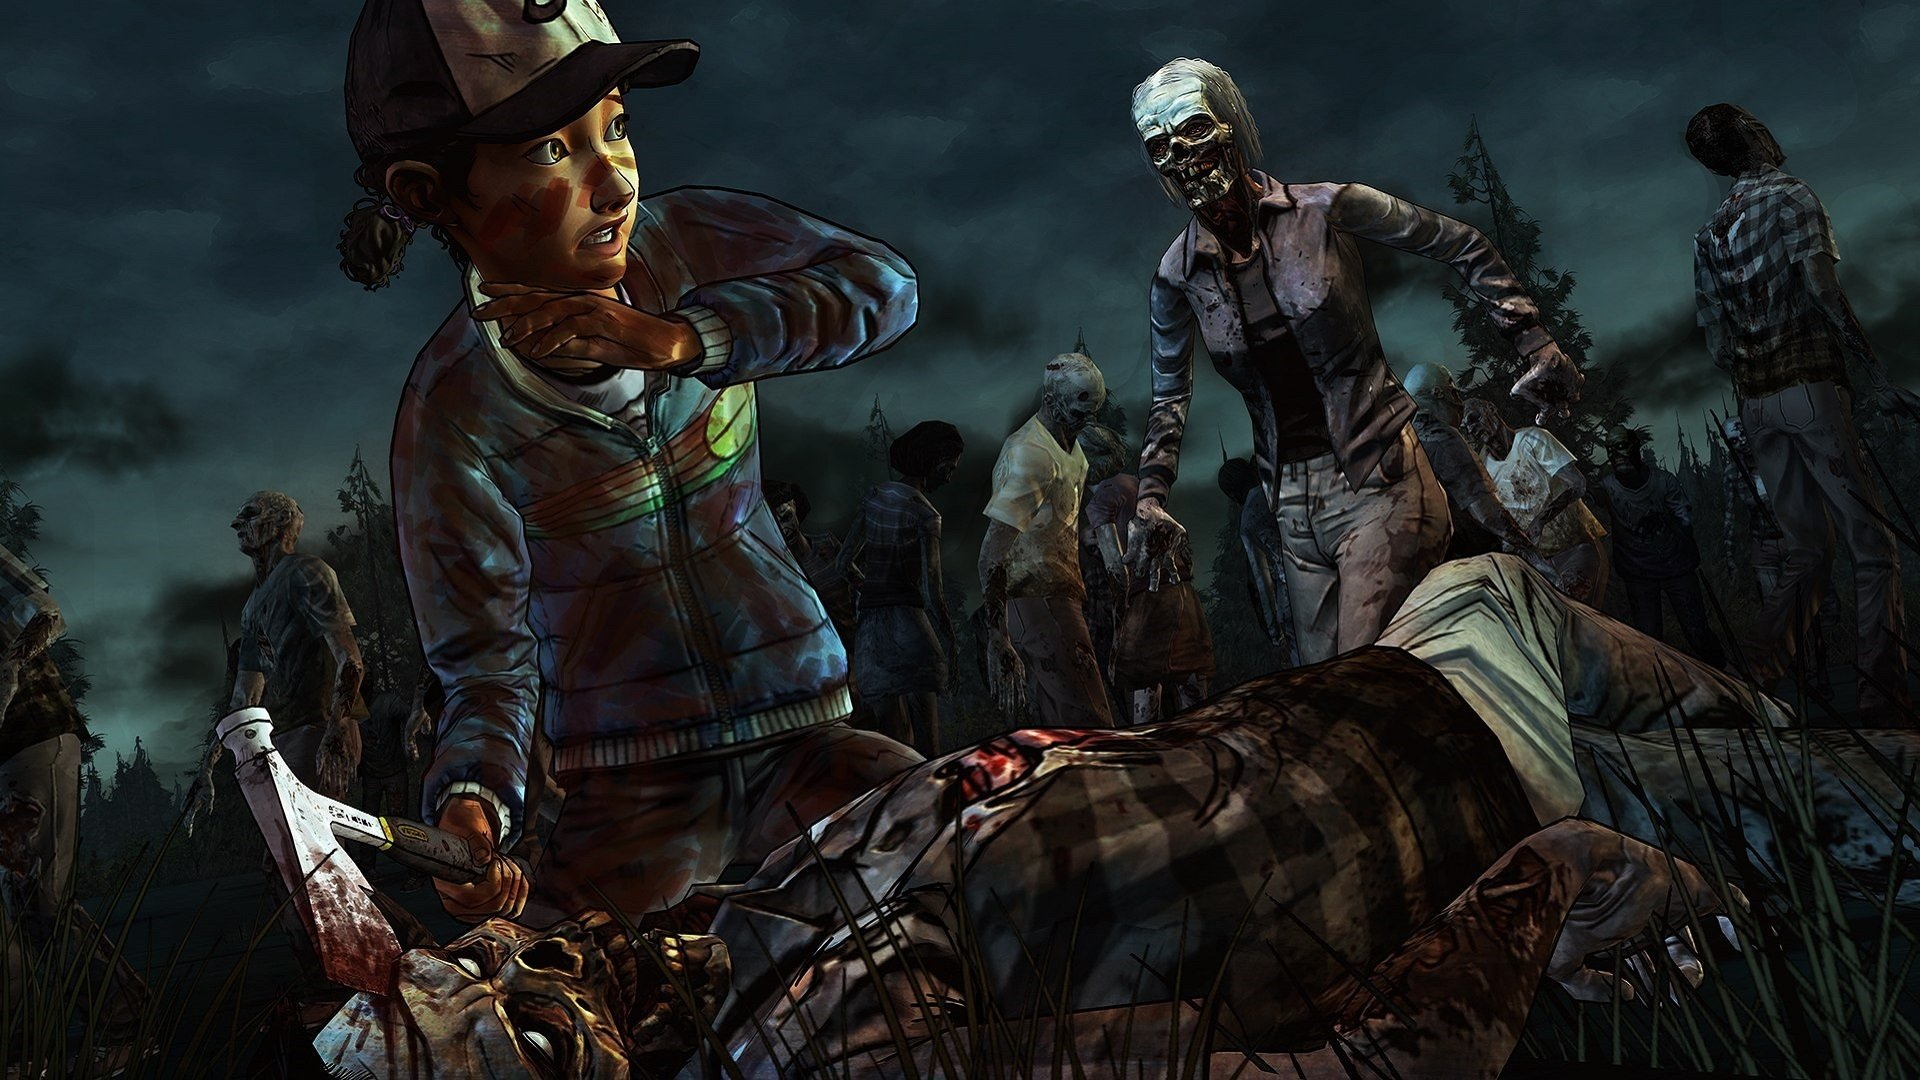 Clementine The Walking Dead Wallpapers 1920x1080 Full Hd 1080p